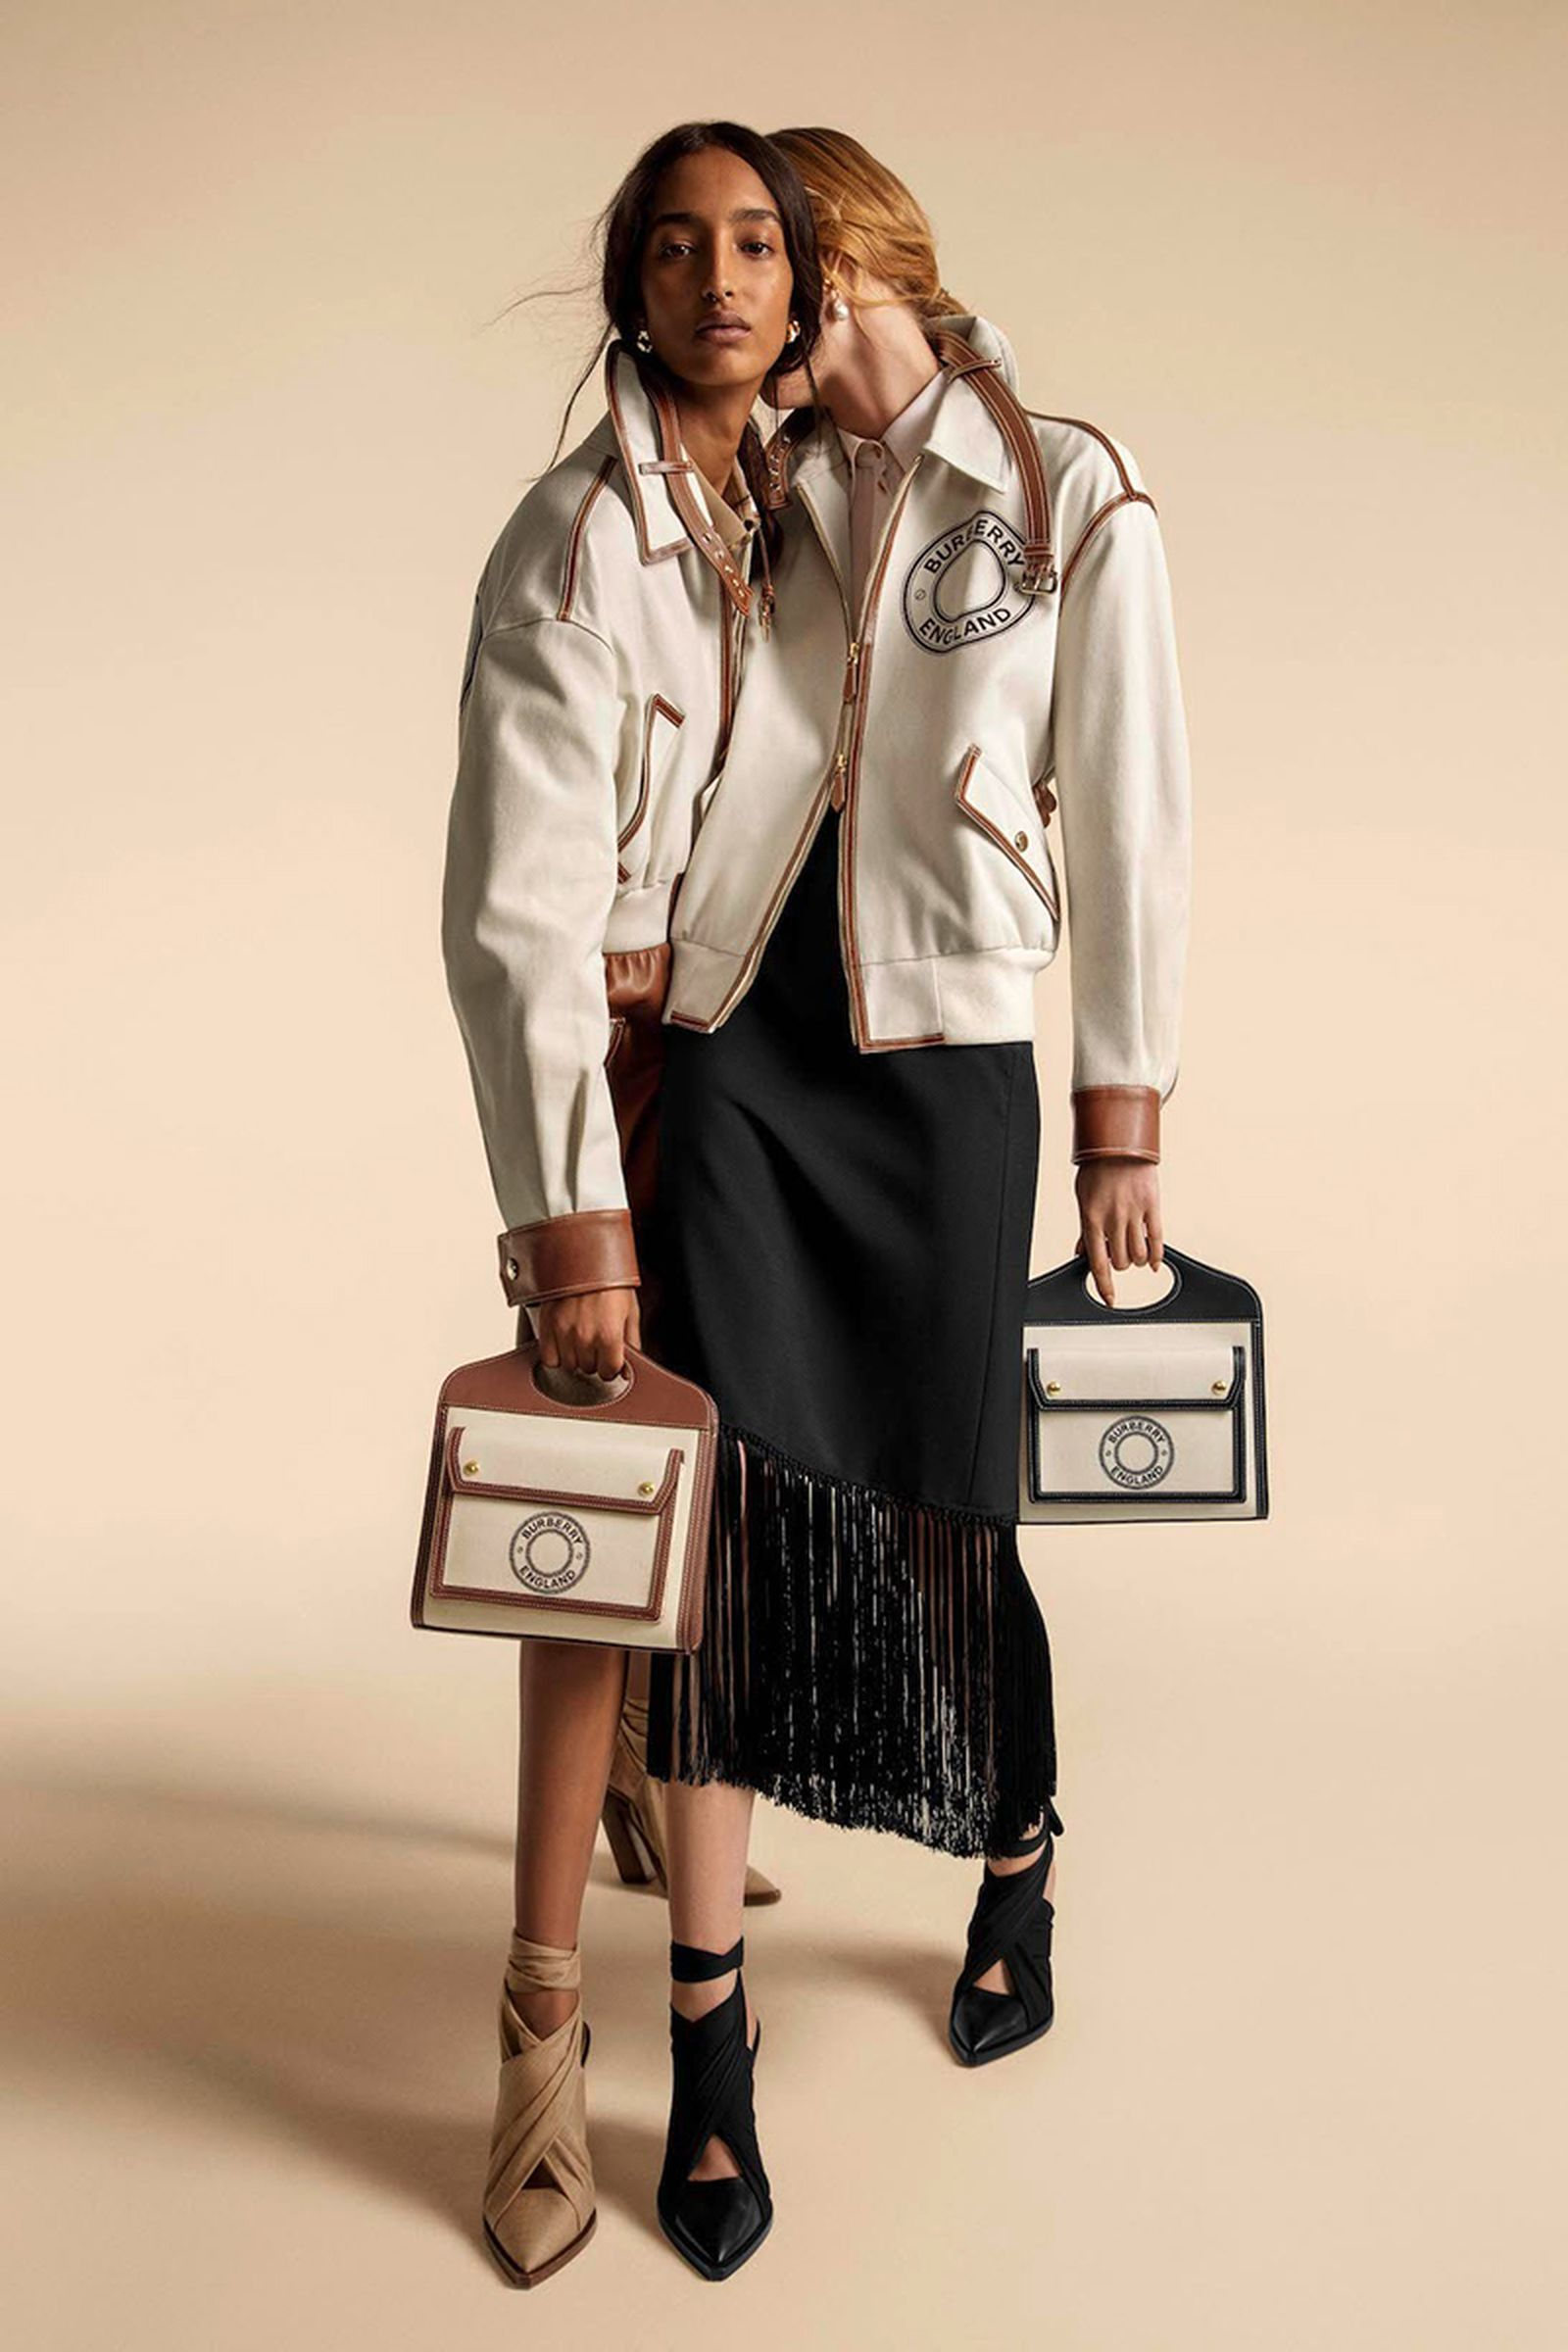 burberry-ss20-campaign-11